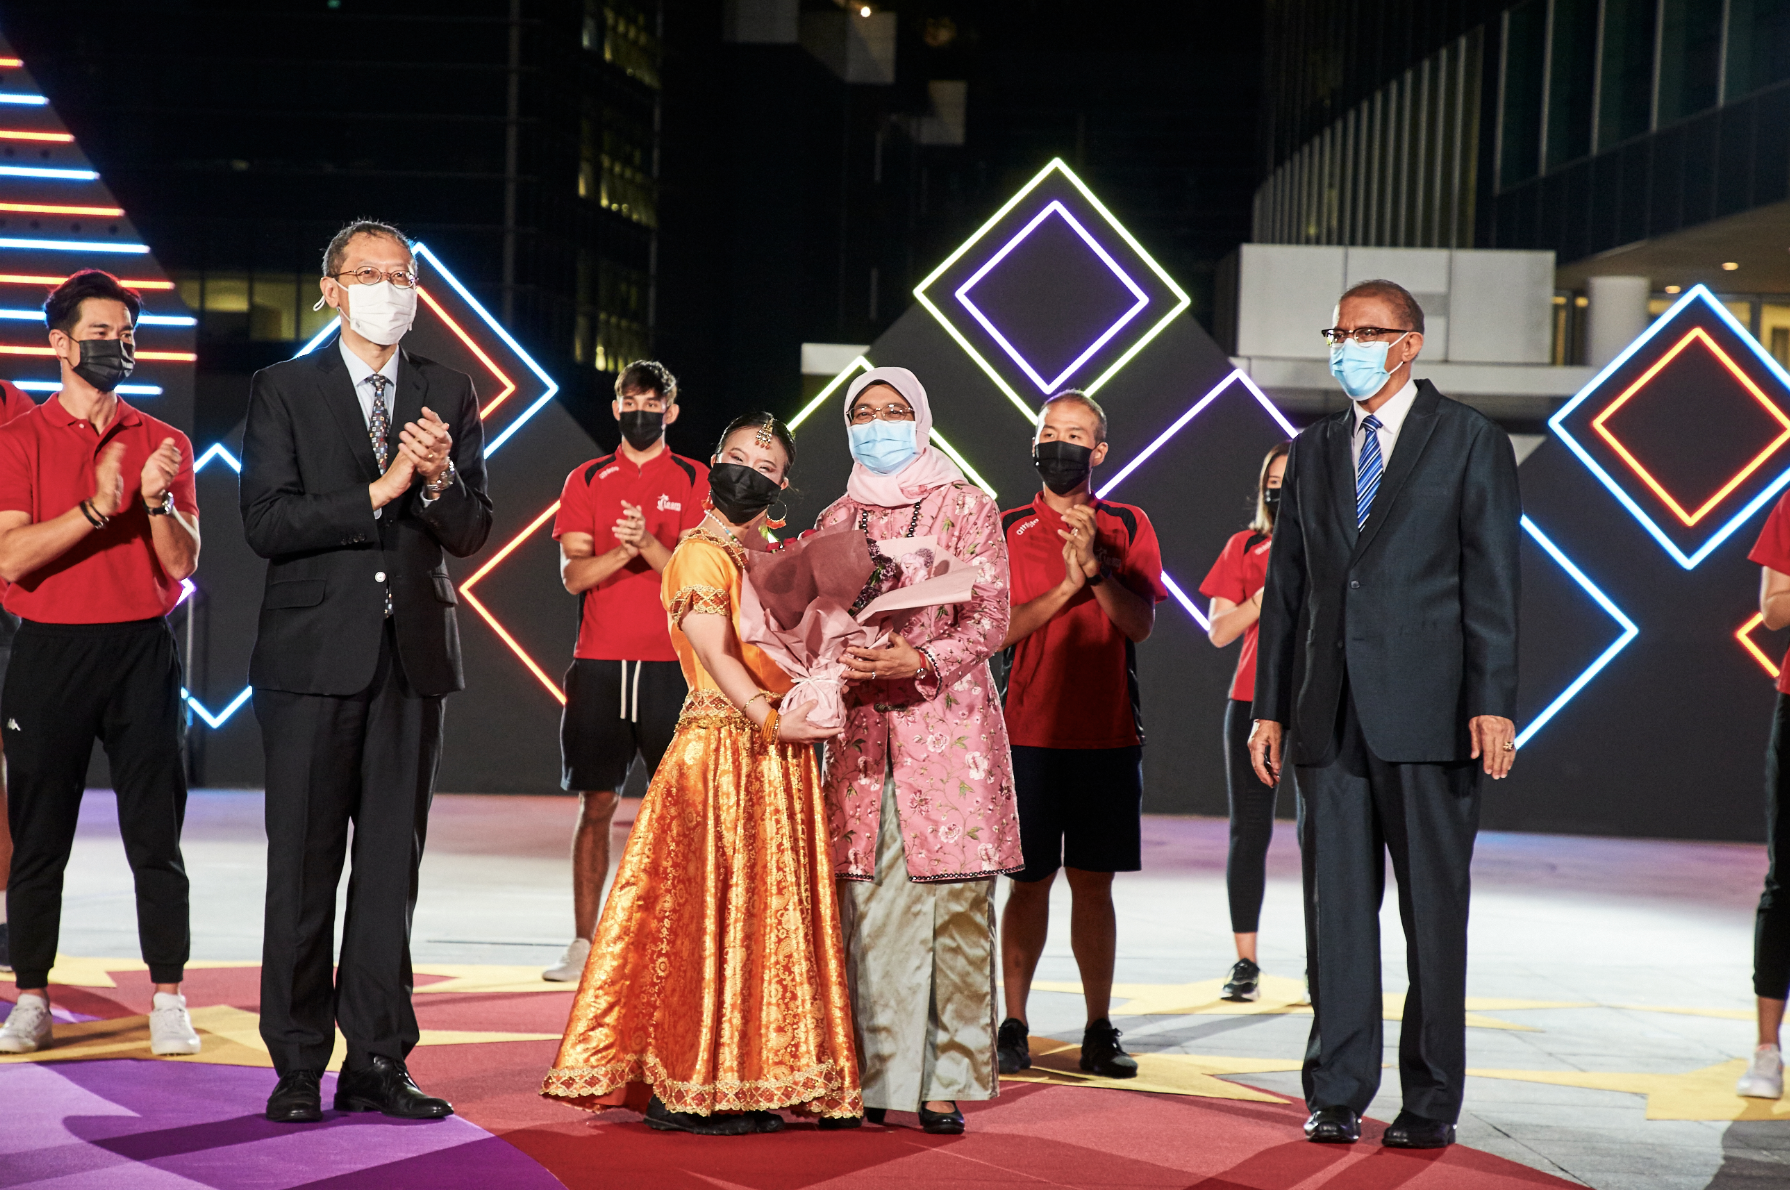 Guest-of-Honour President Halimah Yacob at  the President's Star Charity 2020. Photo courtesy: Mediacorp